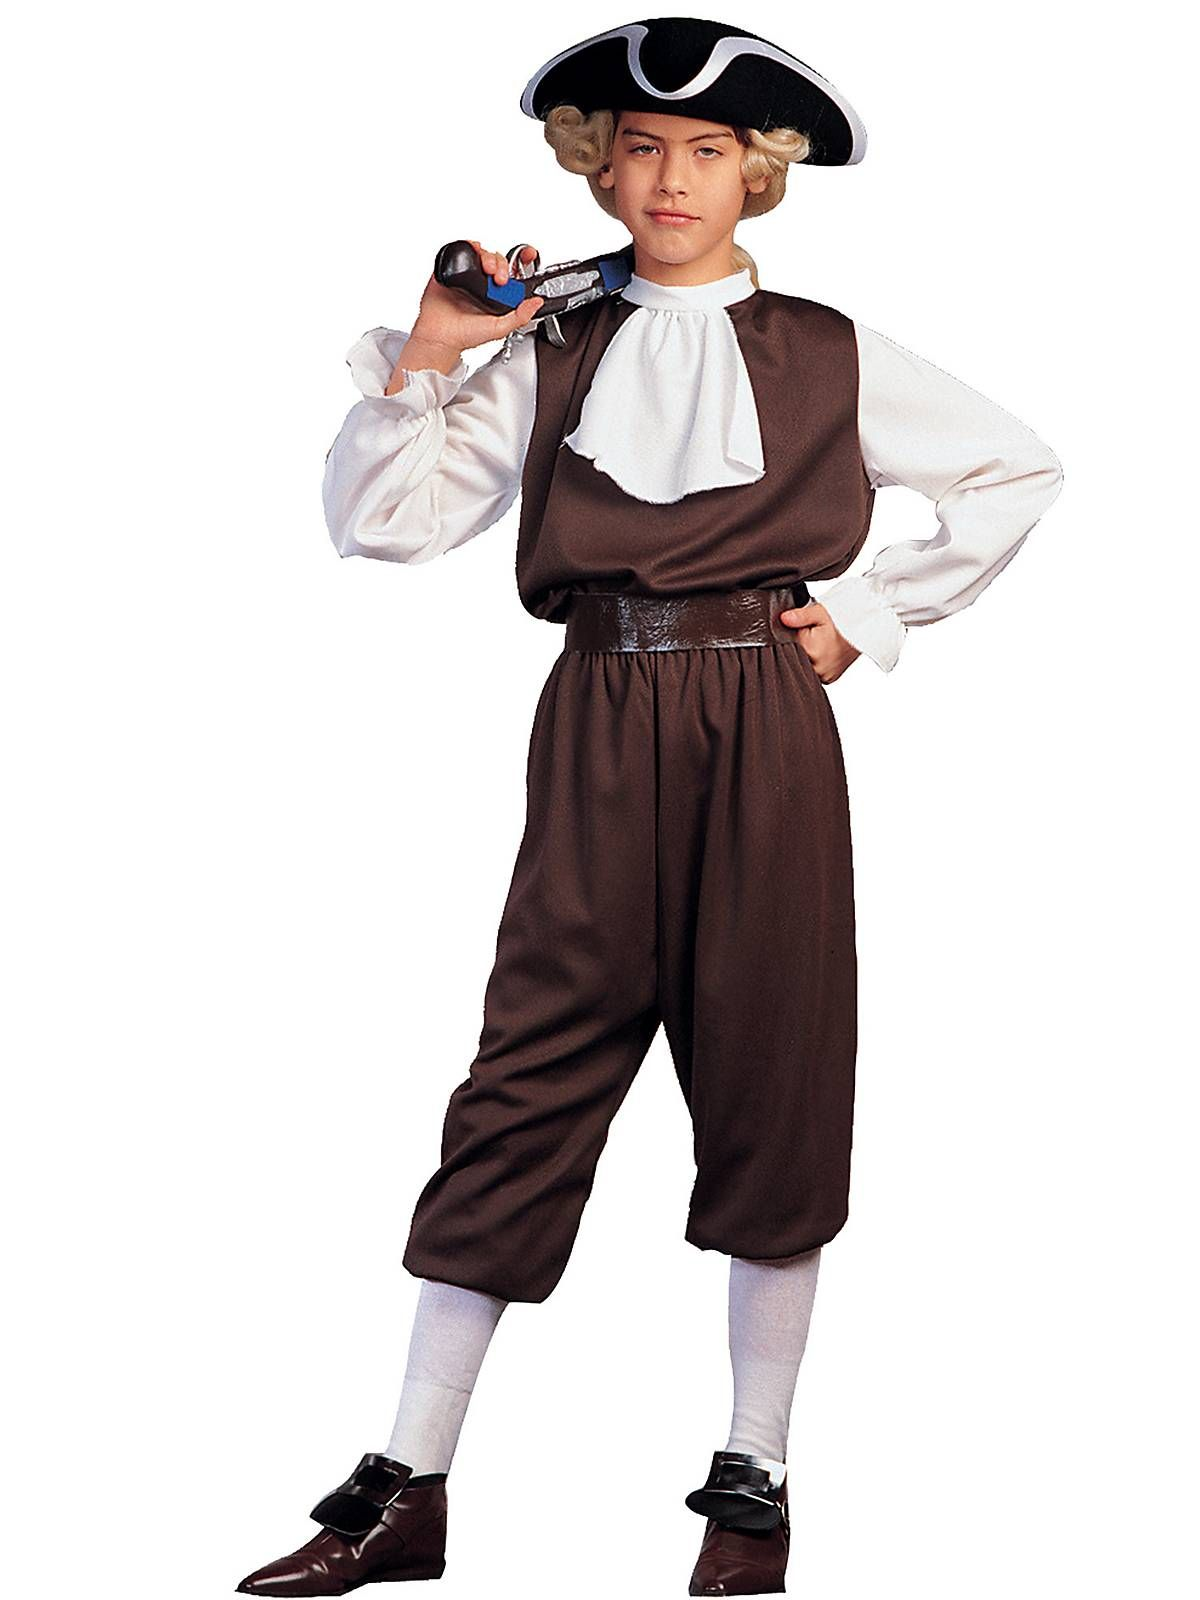 Boy S Colonial Costume See More Costume Ideas For